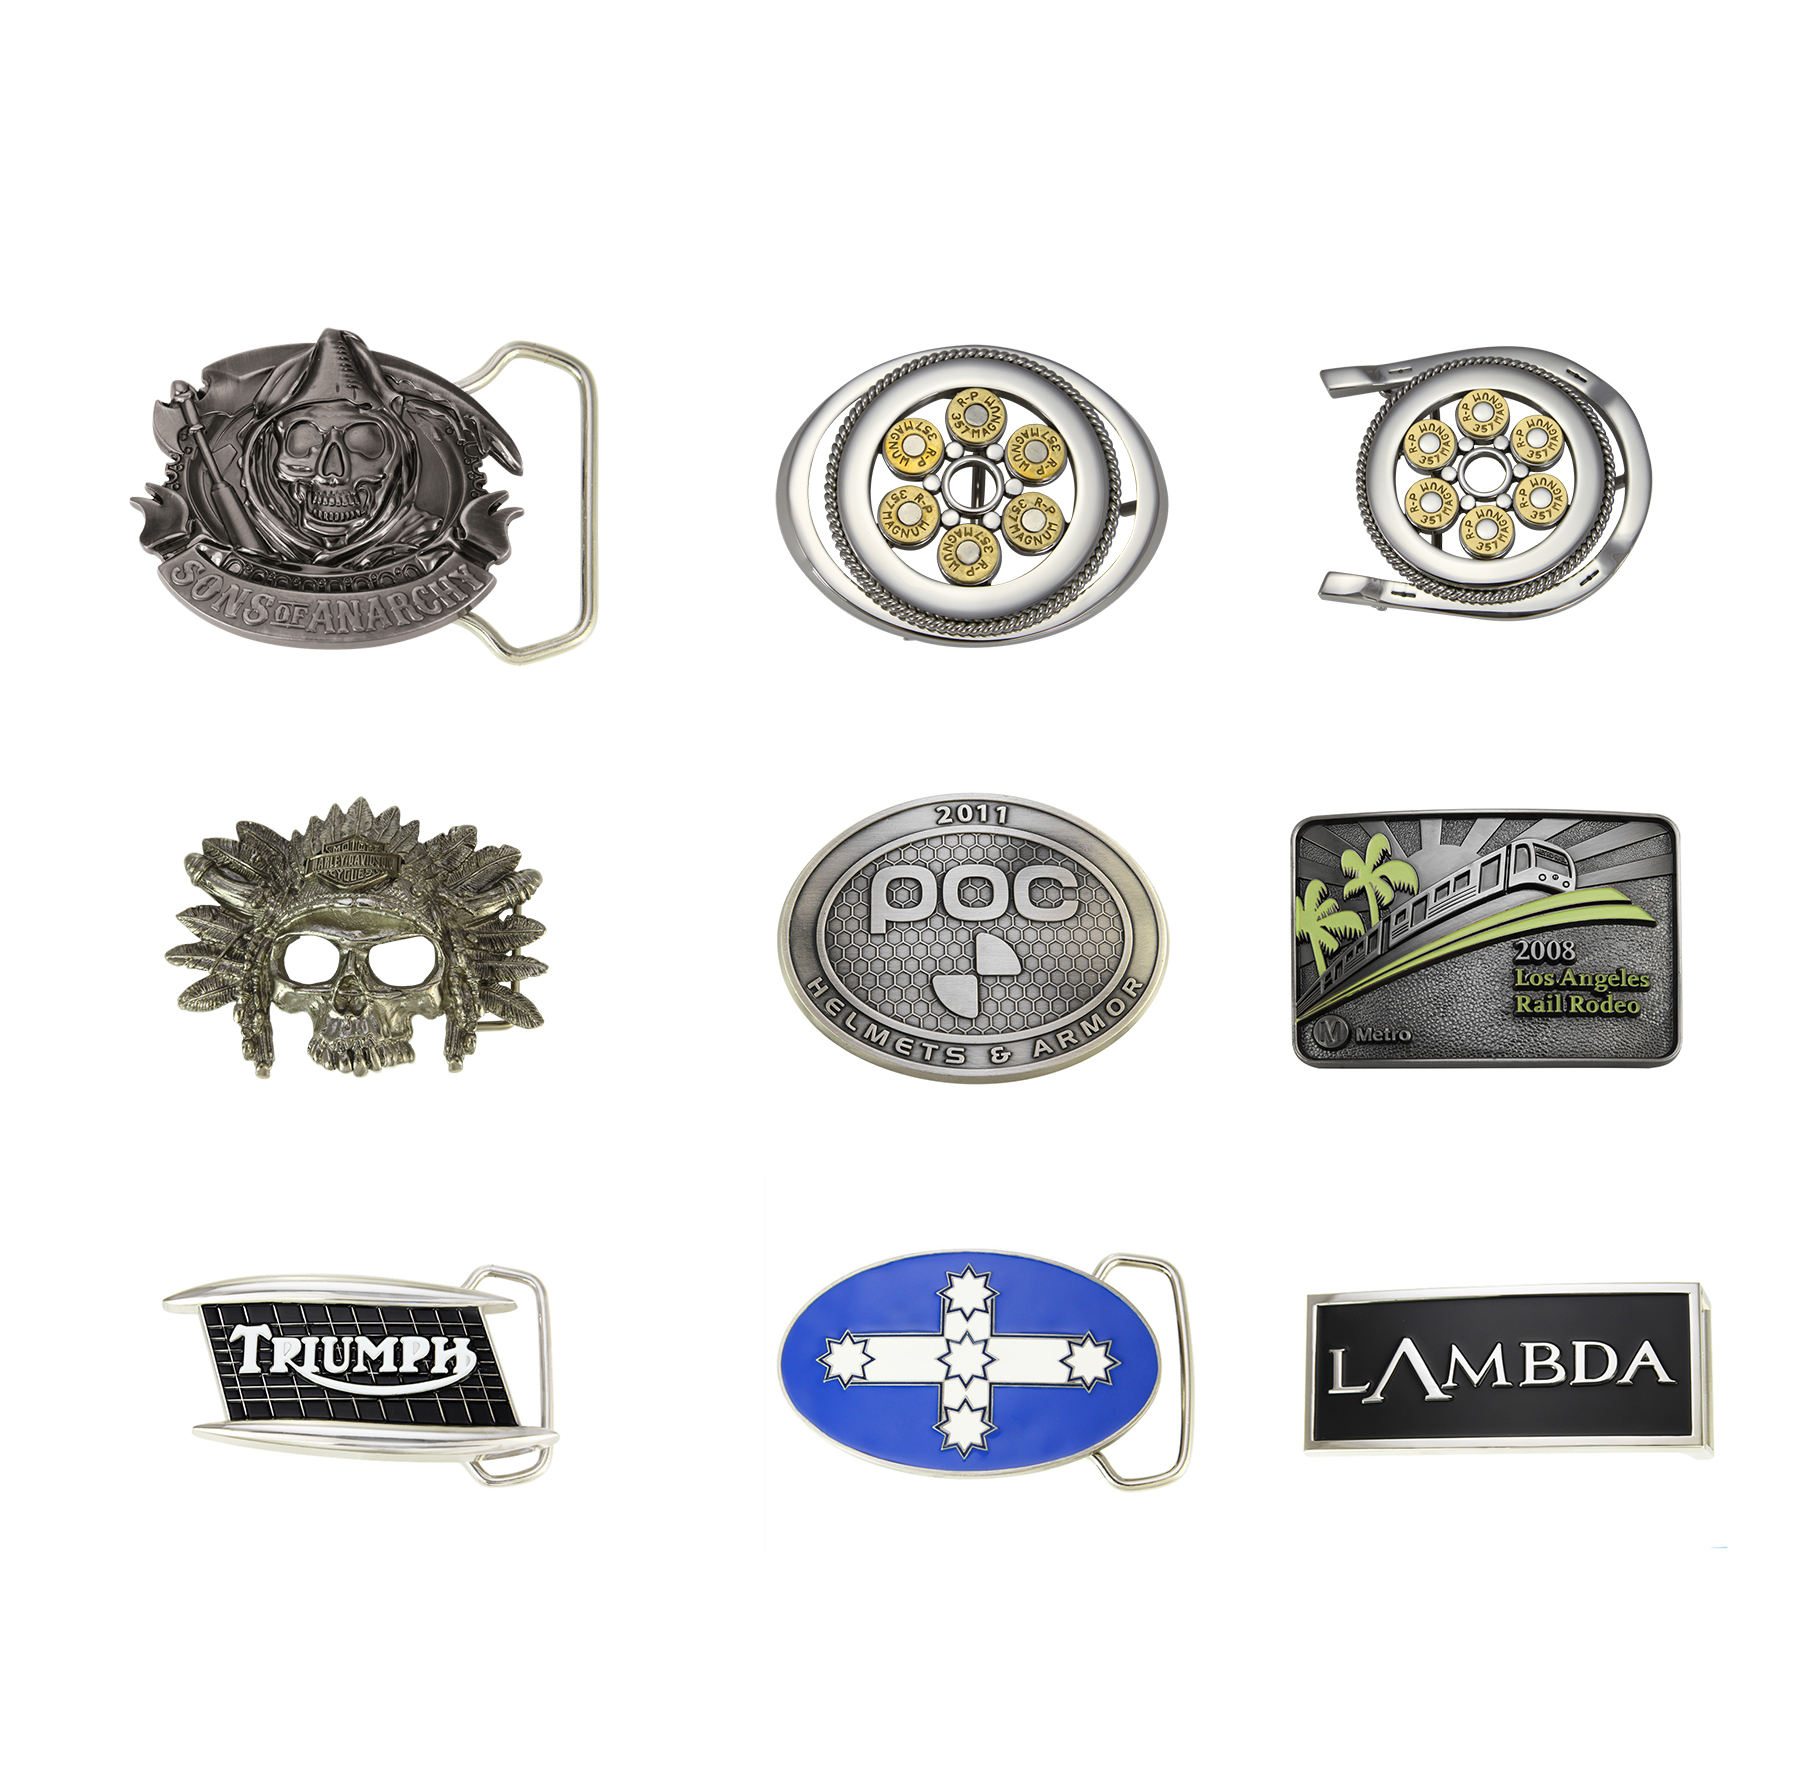 Zinc Alloy Belt Buckle Design Your Own Logo Personalized Metal Zinc Alloy Stainless Steel Belt Buckle For Men